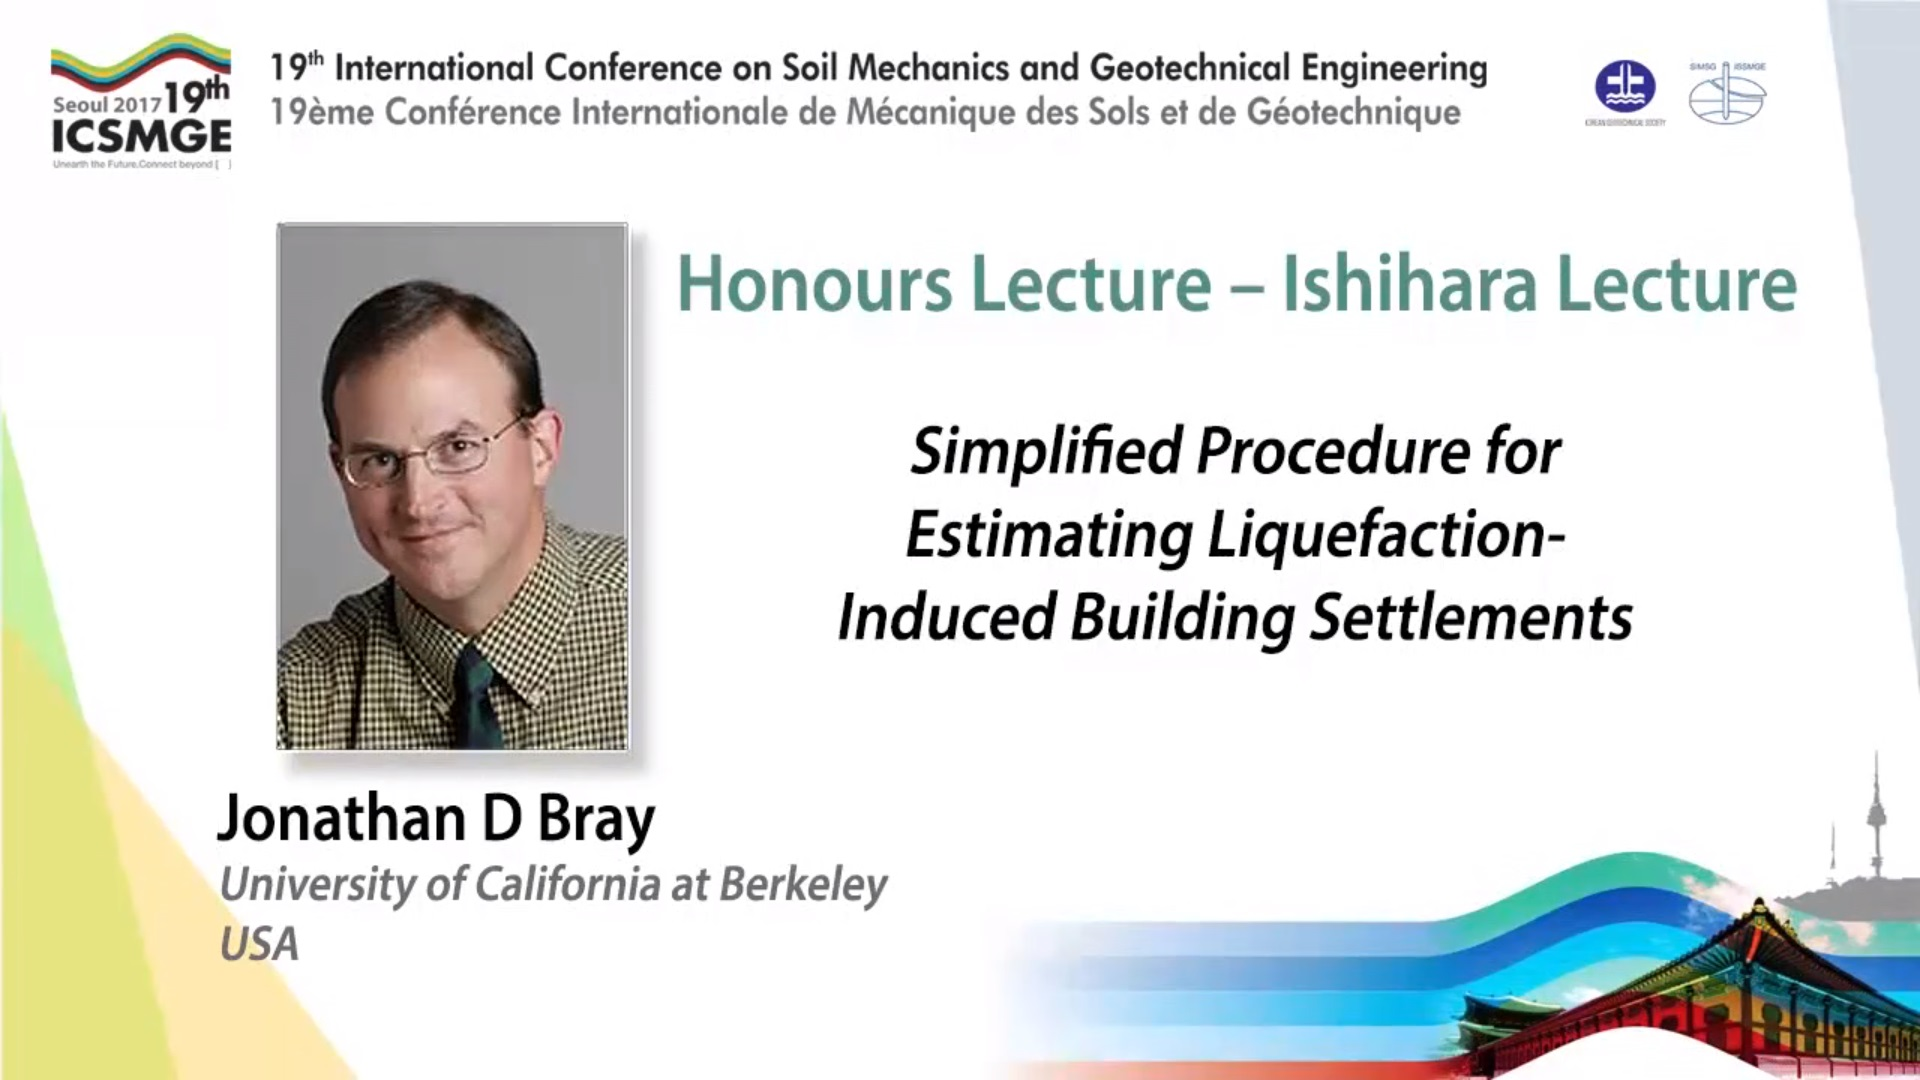 "Simplified Procedure for Estimating Liquefaction - Induced Buildling Settlements (Ishihara Lecture - 19th ICSMGE) {""category"":""honour_lecture"",""subjects"":[""Liquefaction Engineering""],""number"":""ICSMGE19110"",""instructors"":[""Jonathan D Bray""]}"